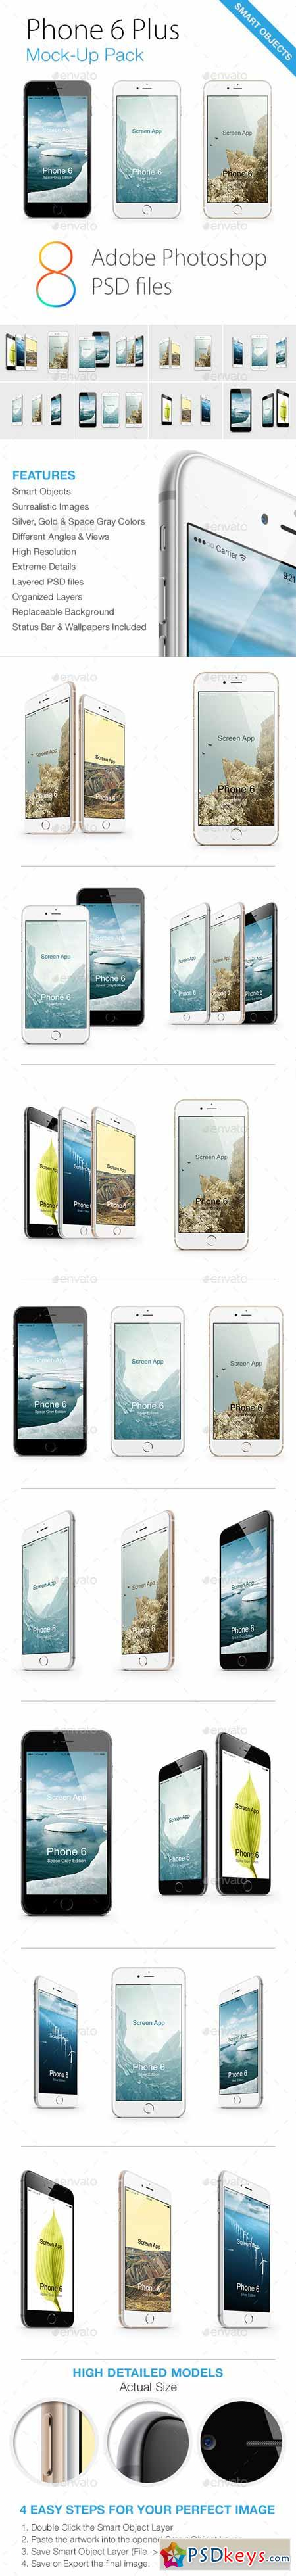 Phone 6 Mock-Ups Pack 8947116